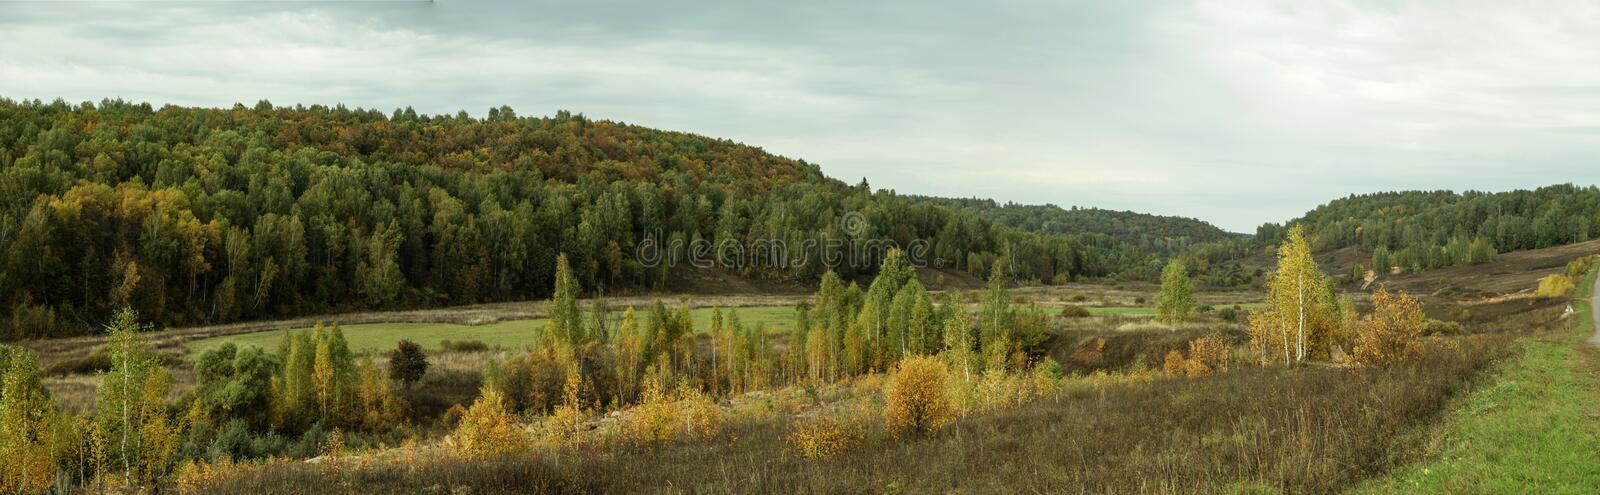 Panorama of edge of forest with planting of young trees royalty free stock photos